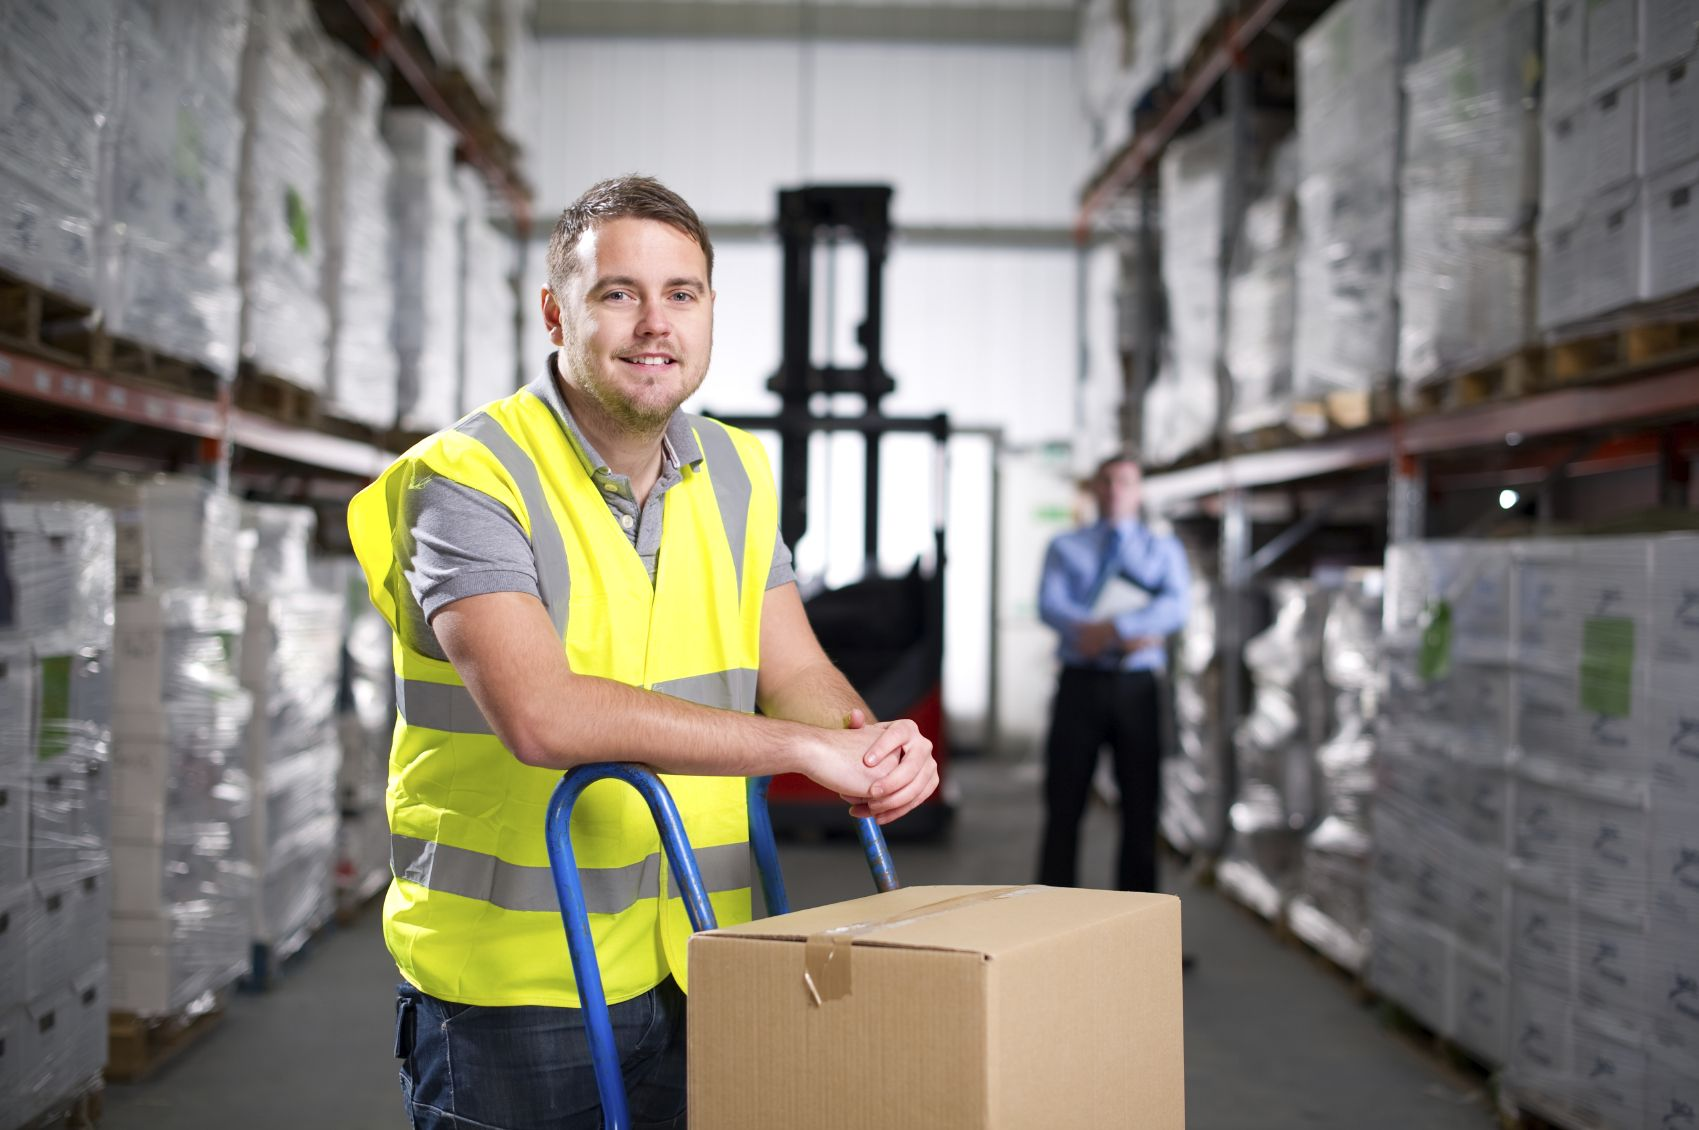 Warehouse worker stands with a hand truck carrying boxes as his manager looks on in the background